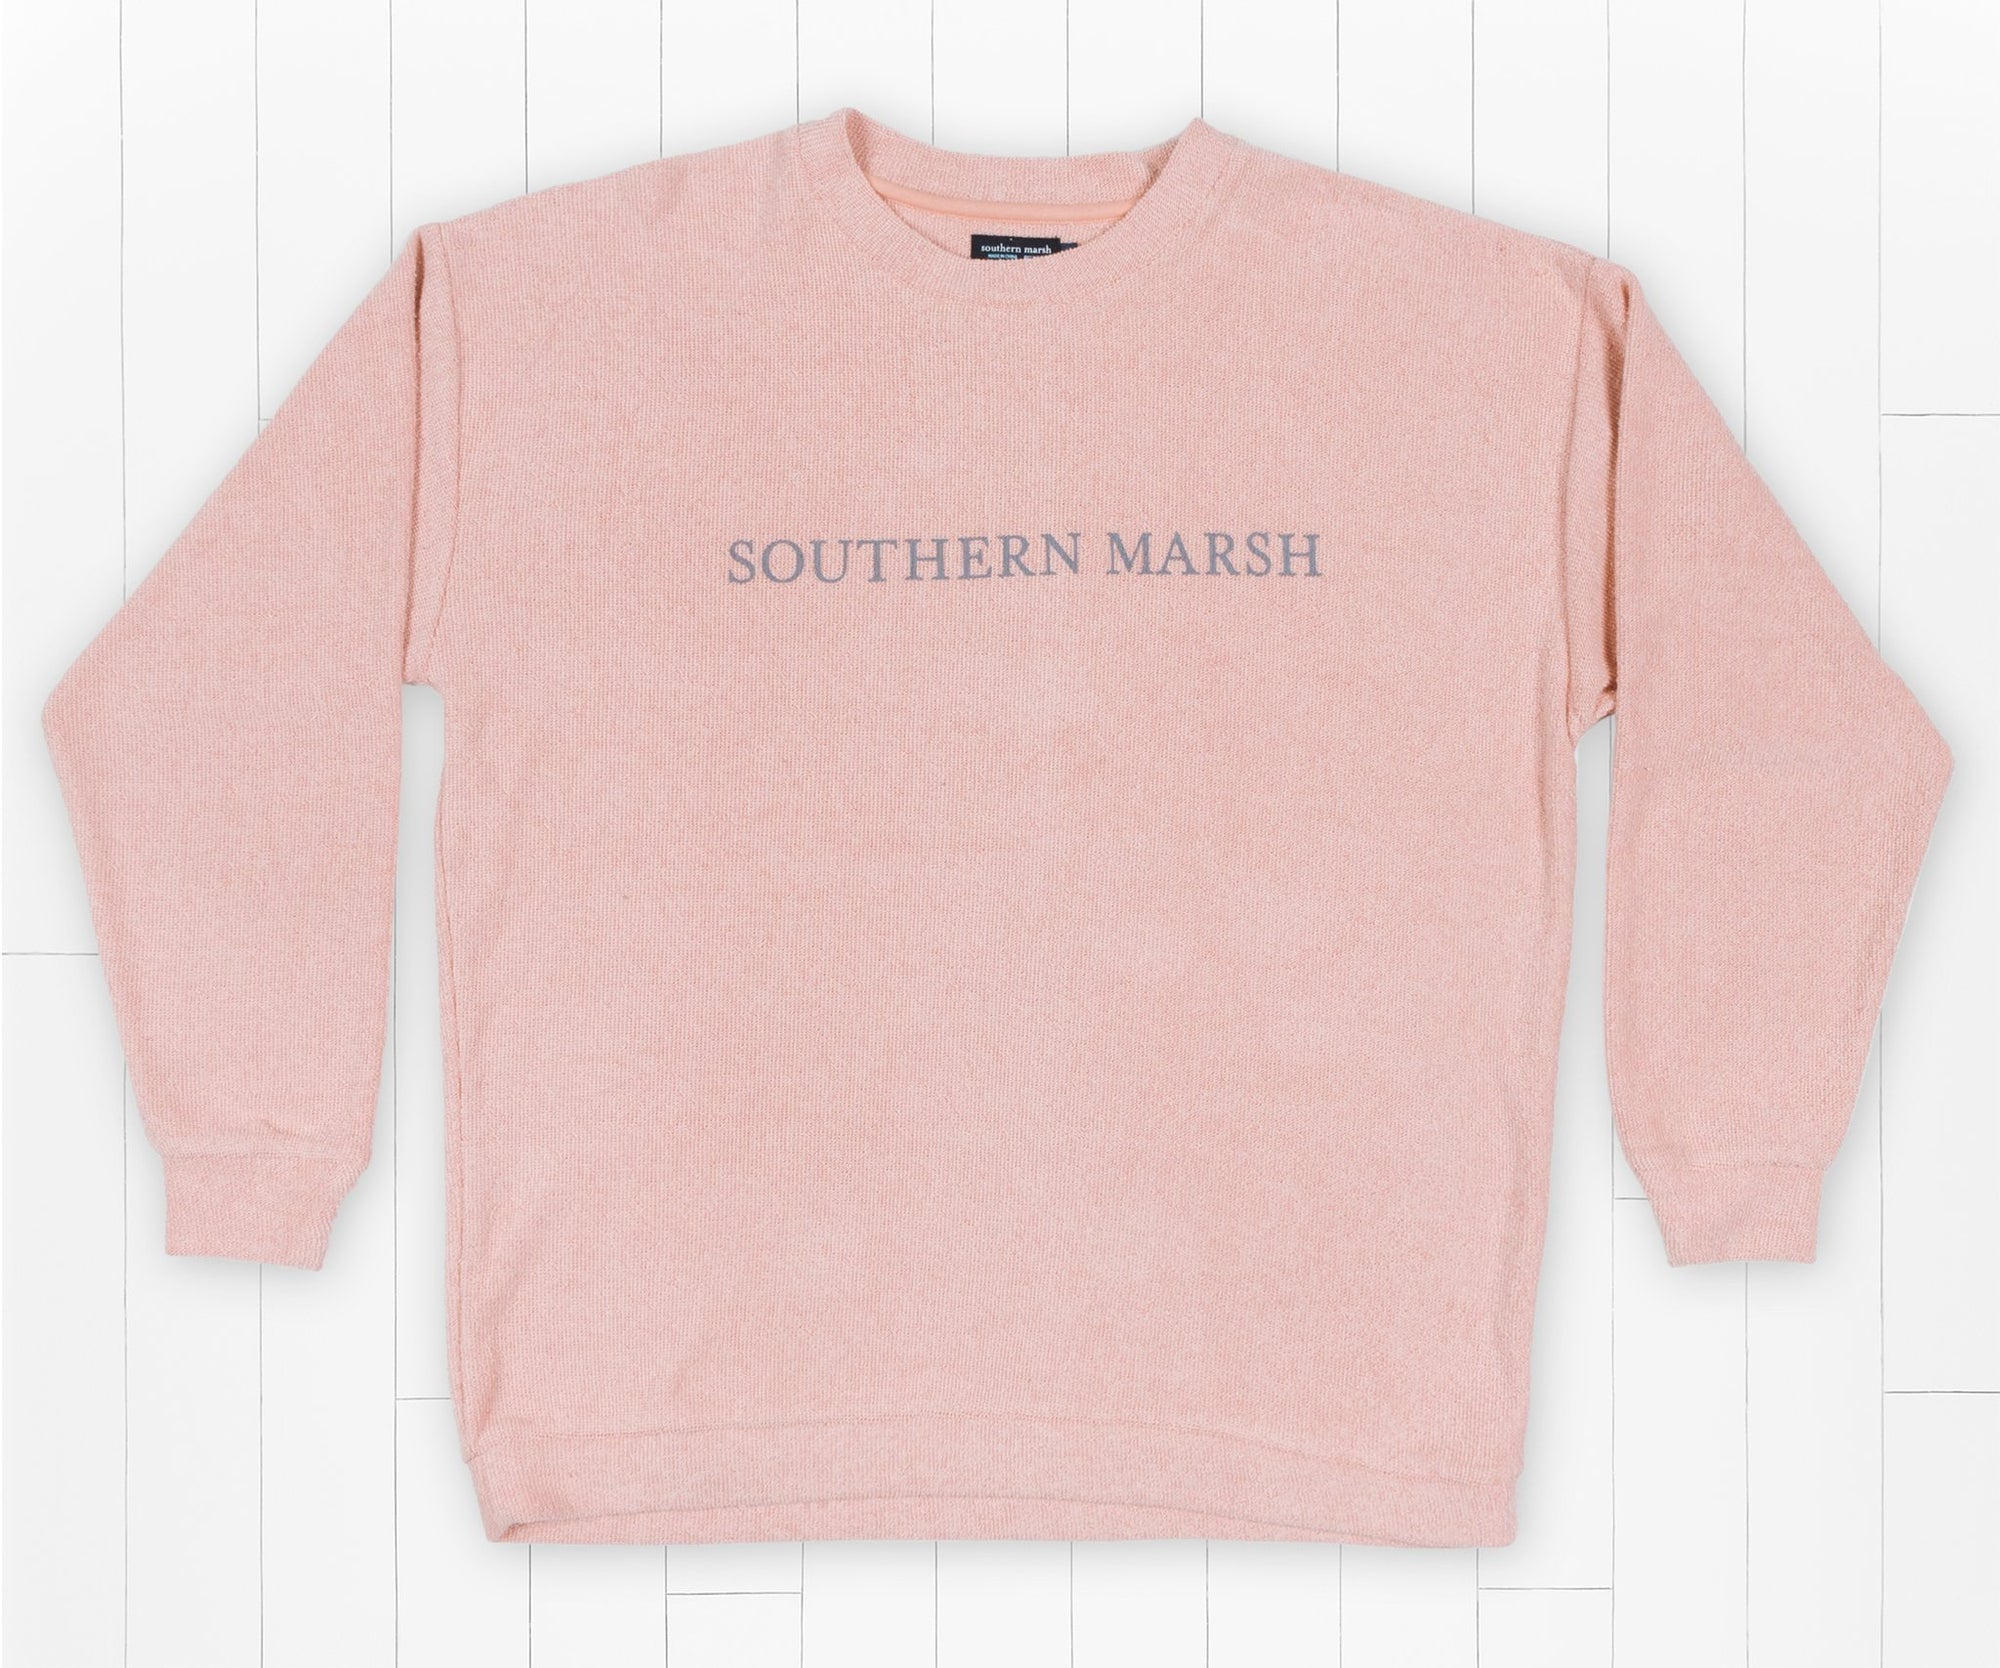 SOUTHERN MARSH COLLECTION Women's Sweater Southern Marsh Sunday Morning Sweater || David's Clothing